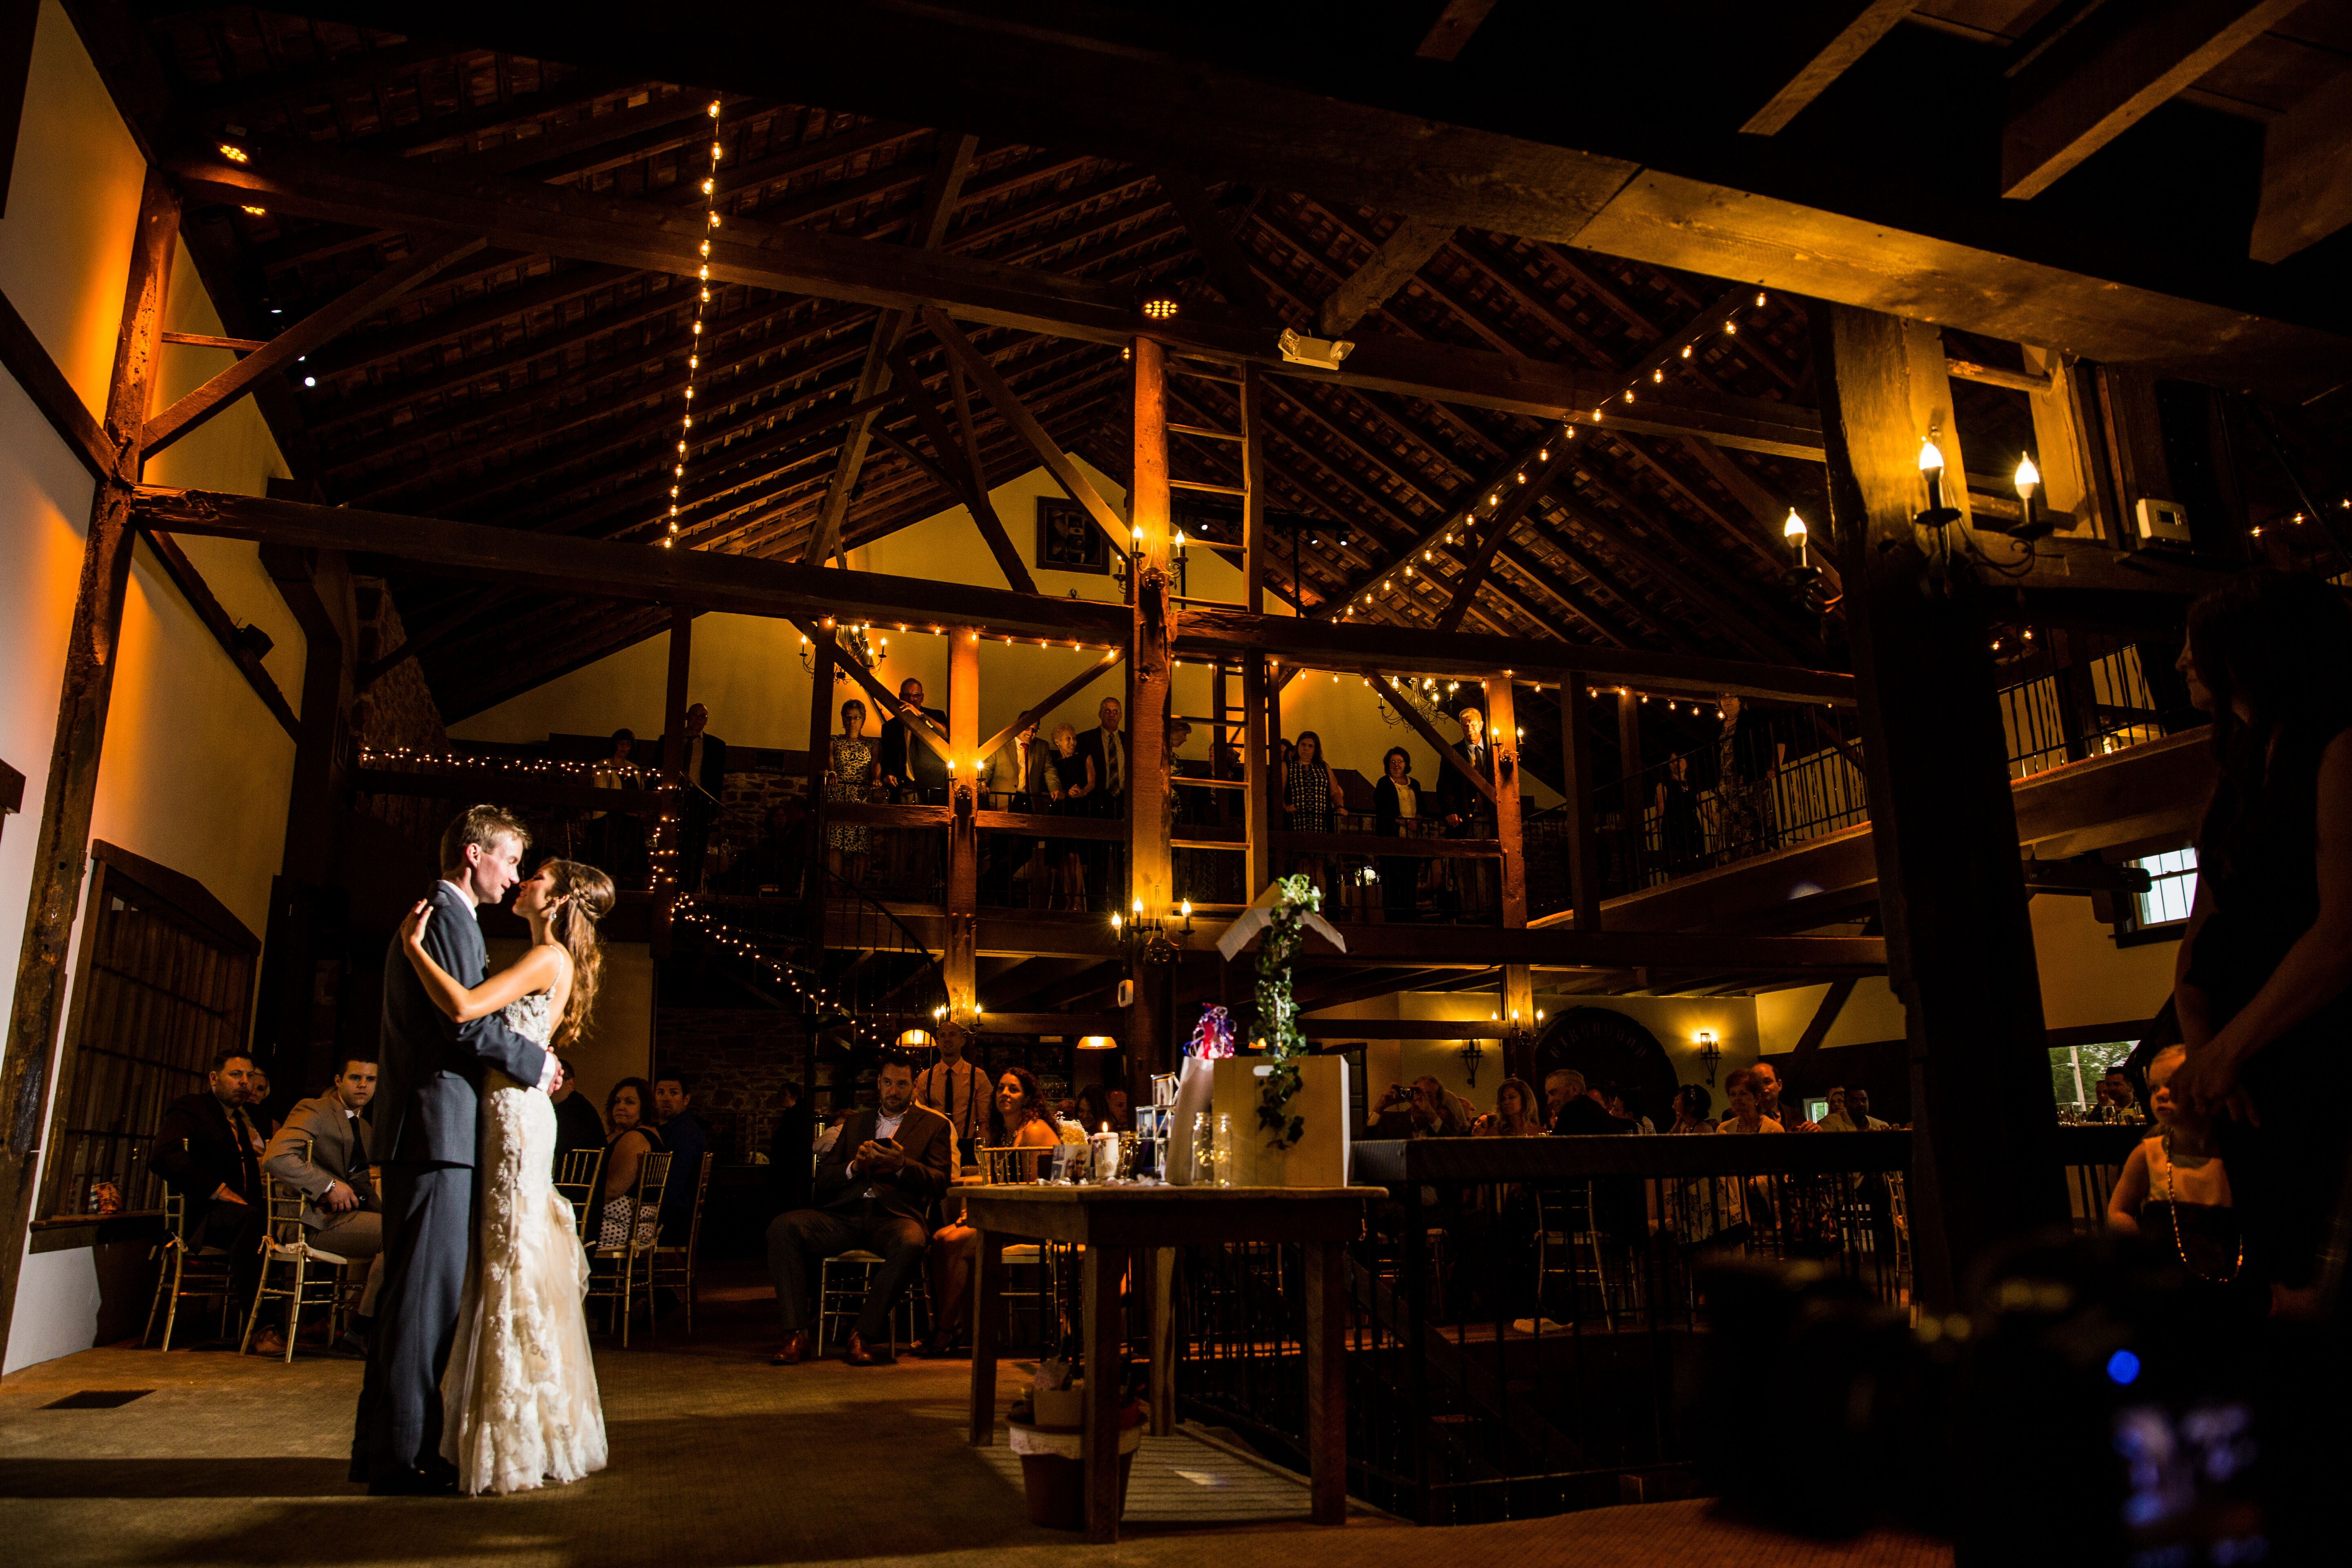 The Barn On Bridge Reception Venues Collegeville Pa